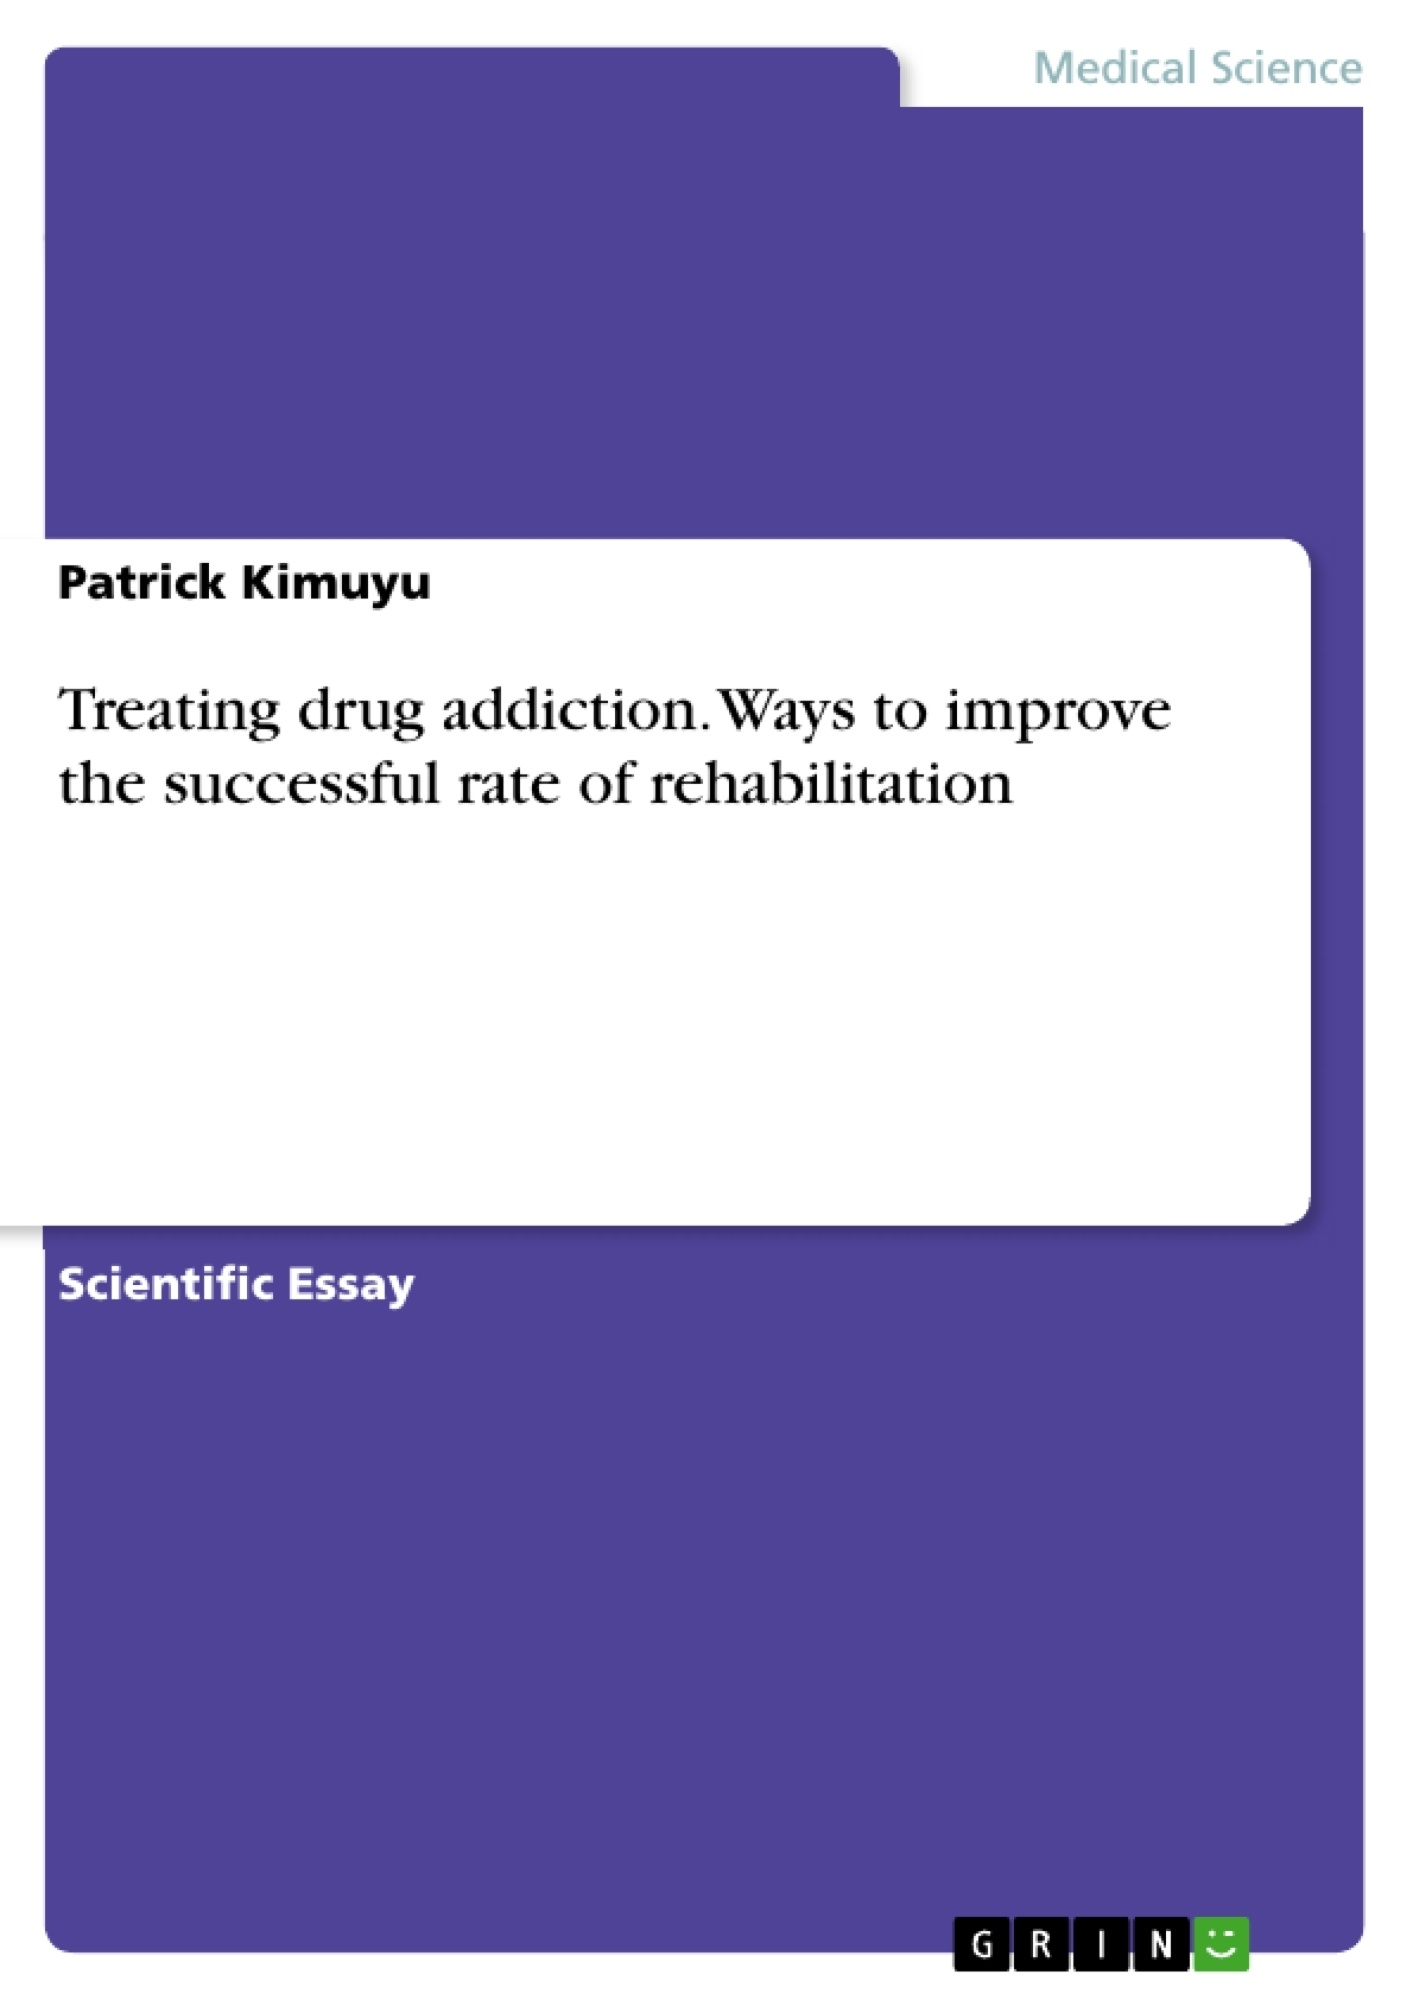 Title: Treating drug addiction. Ways to improve the successful rate of rehabilitation